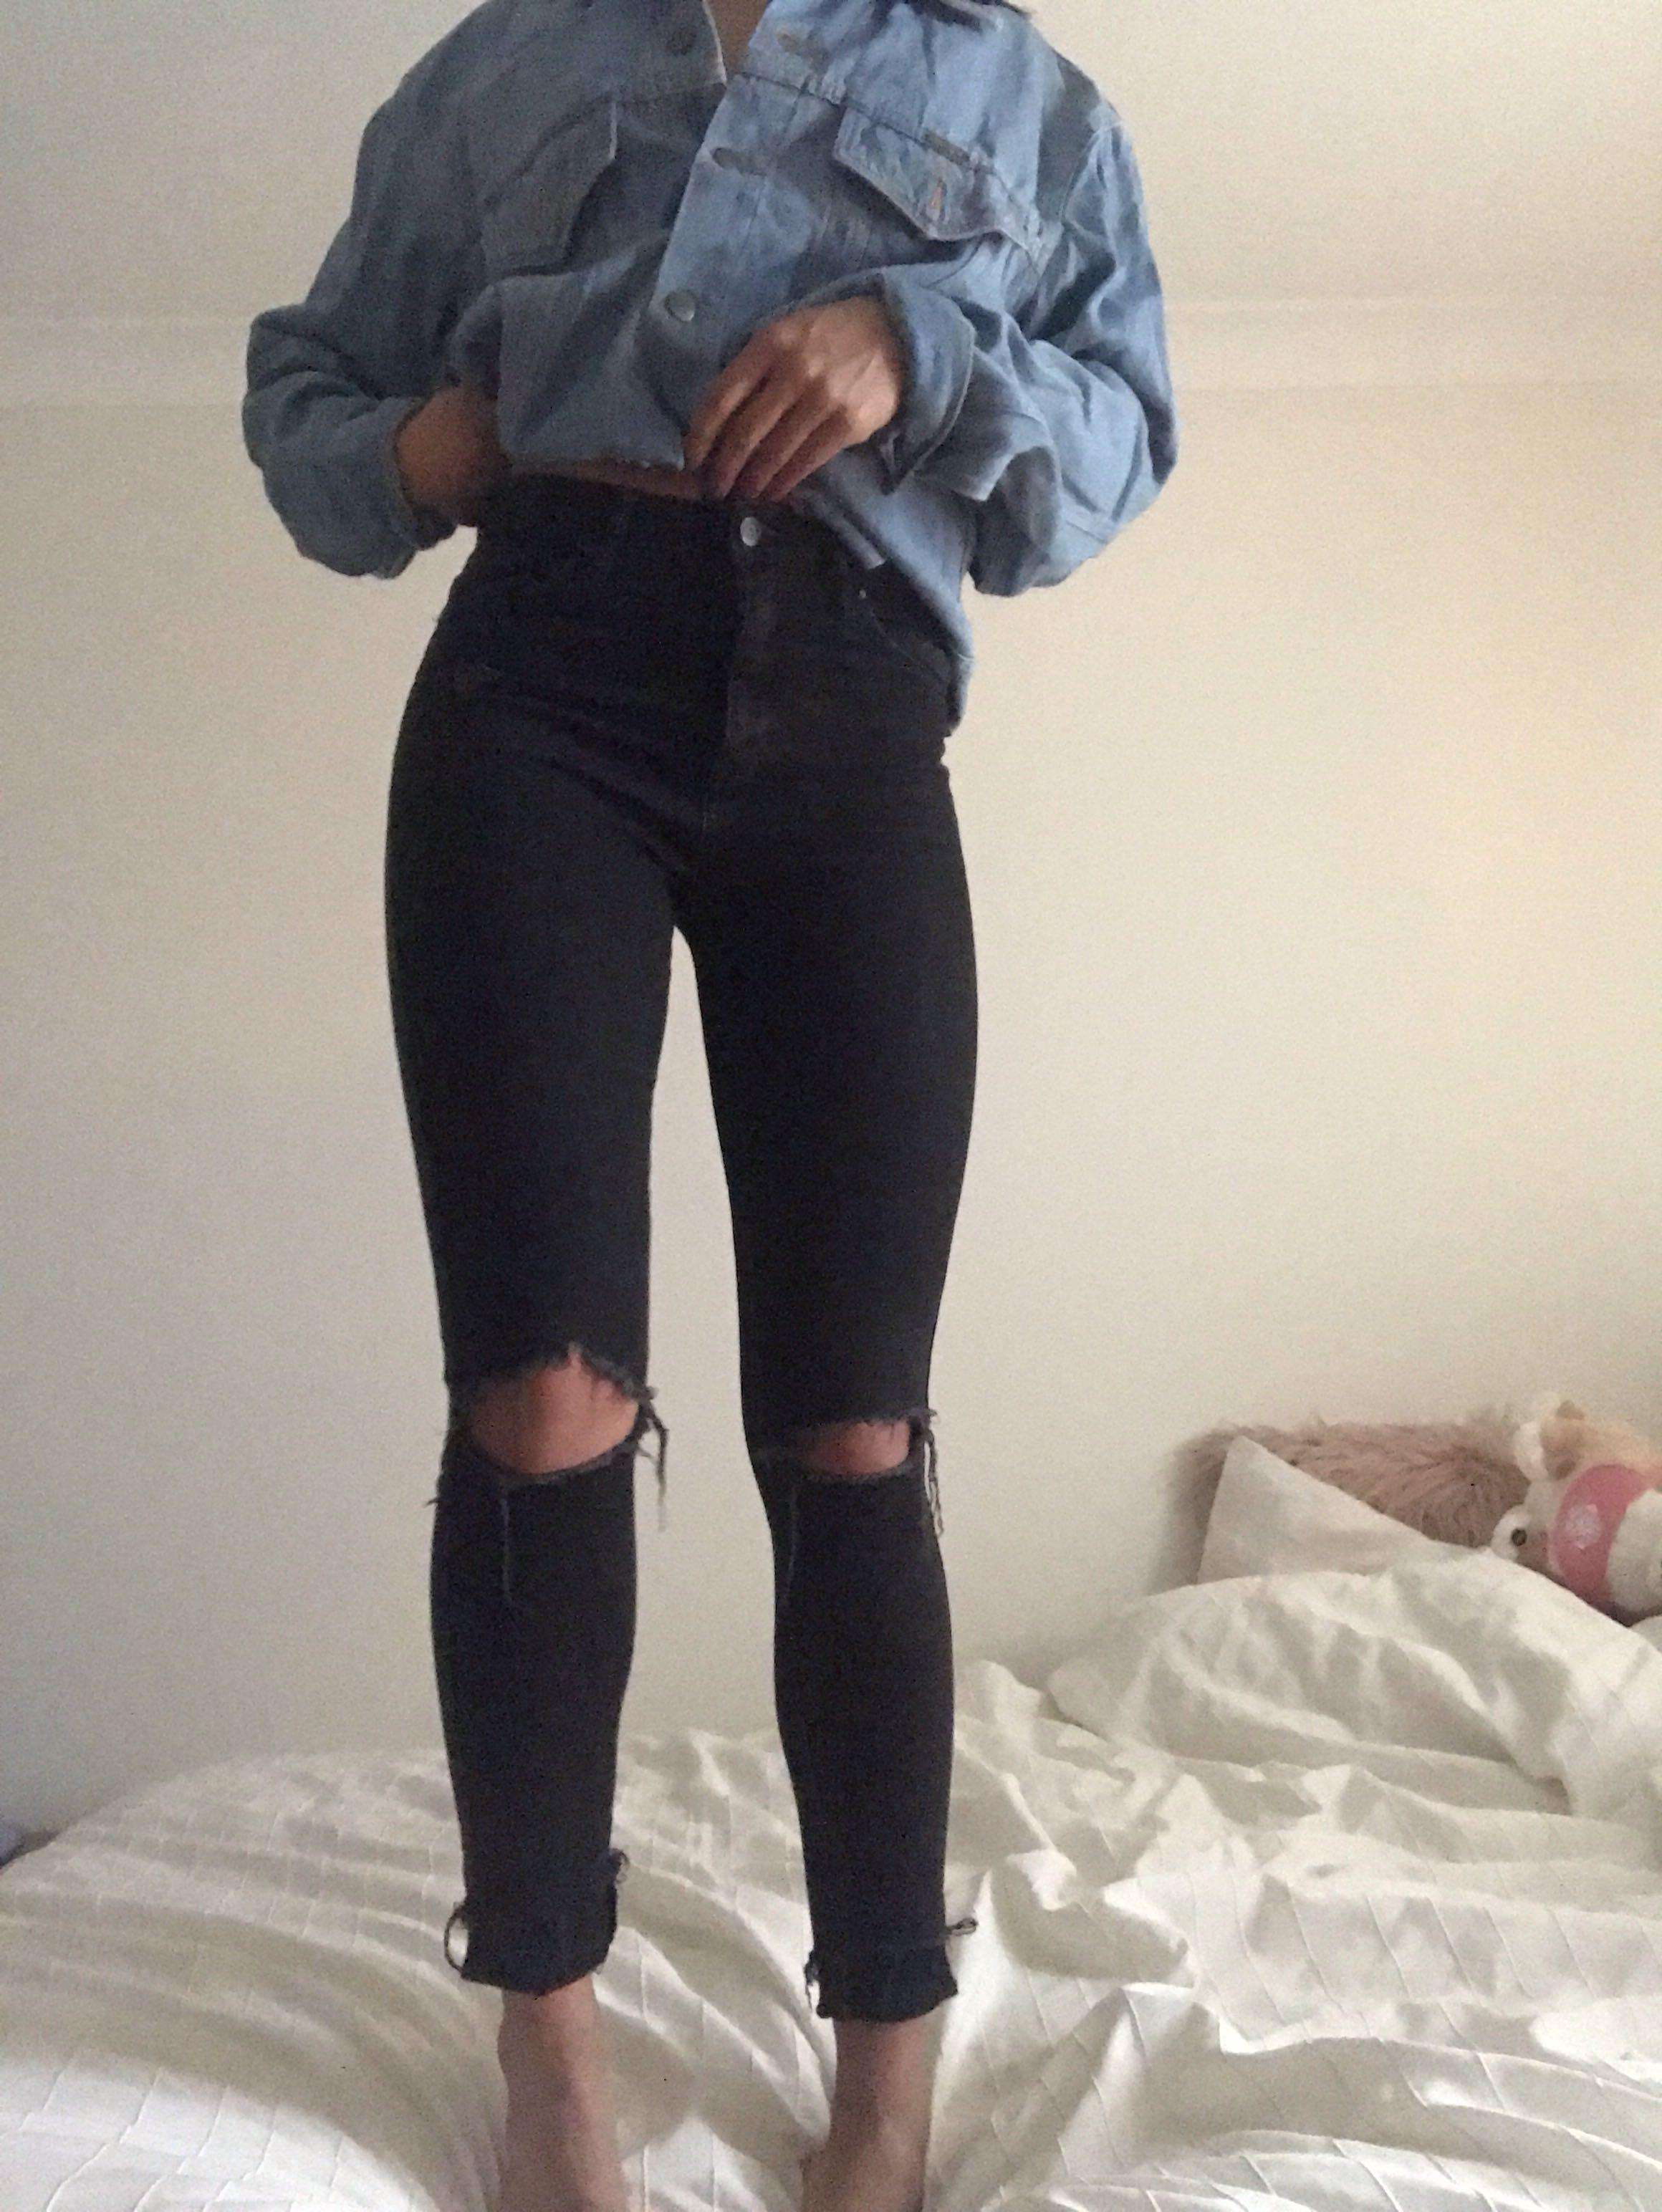 Lee Ripped Jeans - all proceeds will be donated to the Red Cross bushfire appeal